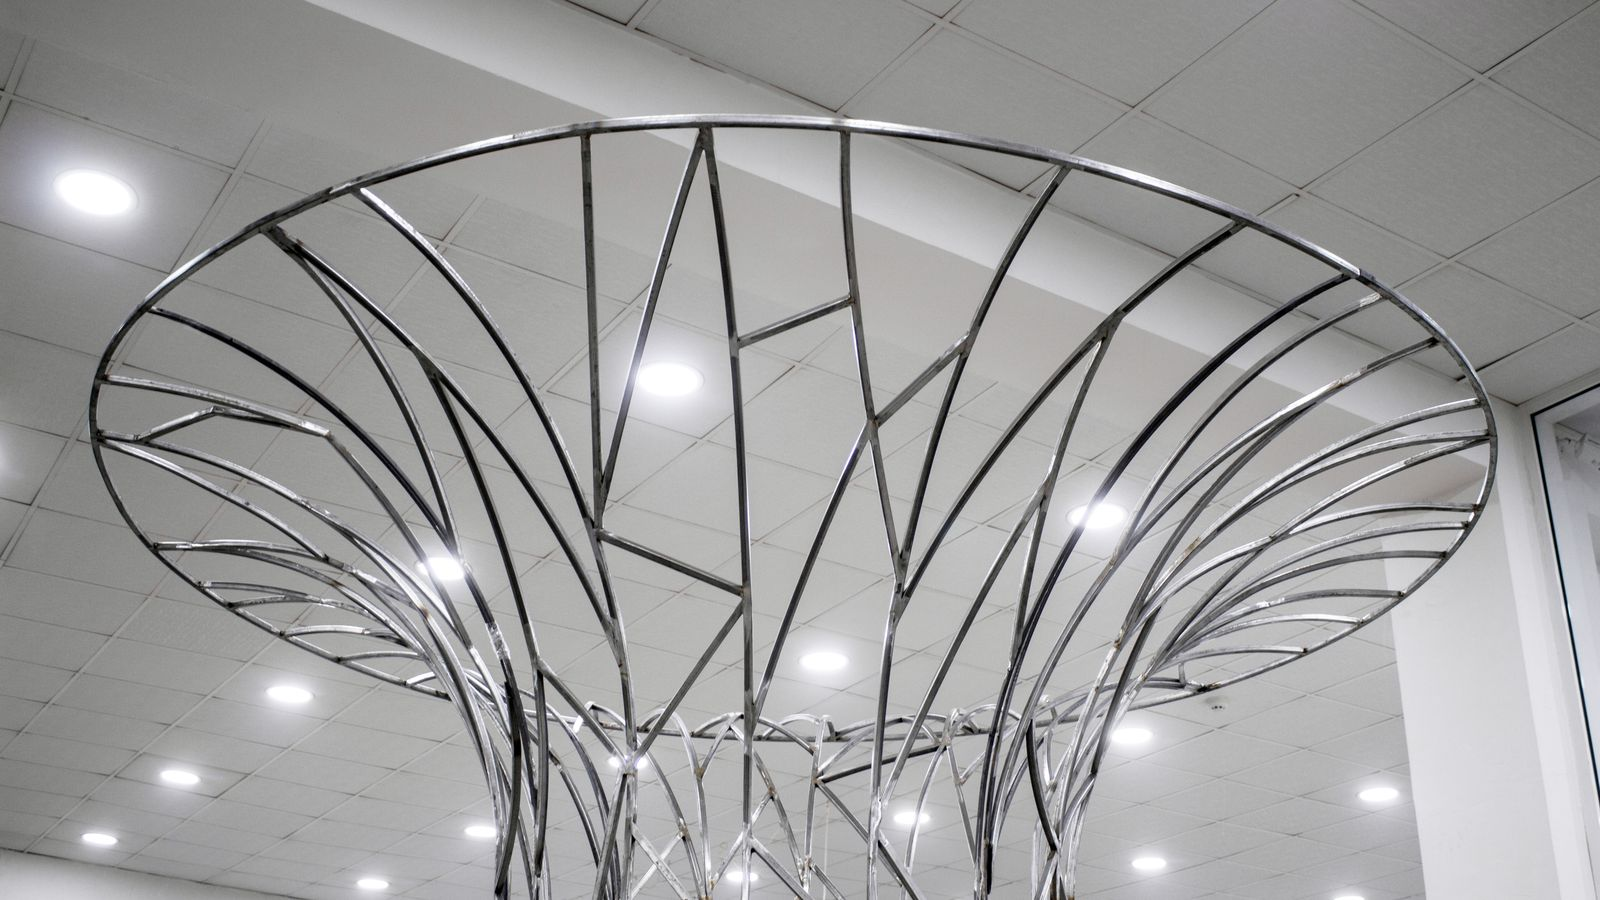 custom indoor sign in the shape of a Singapore tree made of aluminum for office decorating